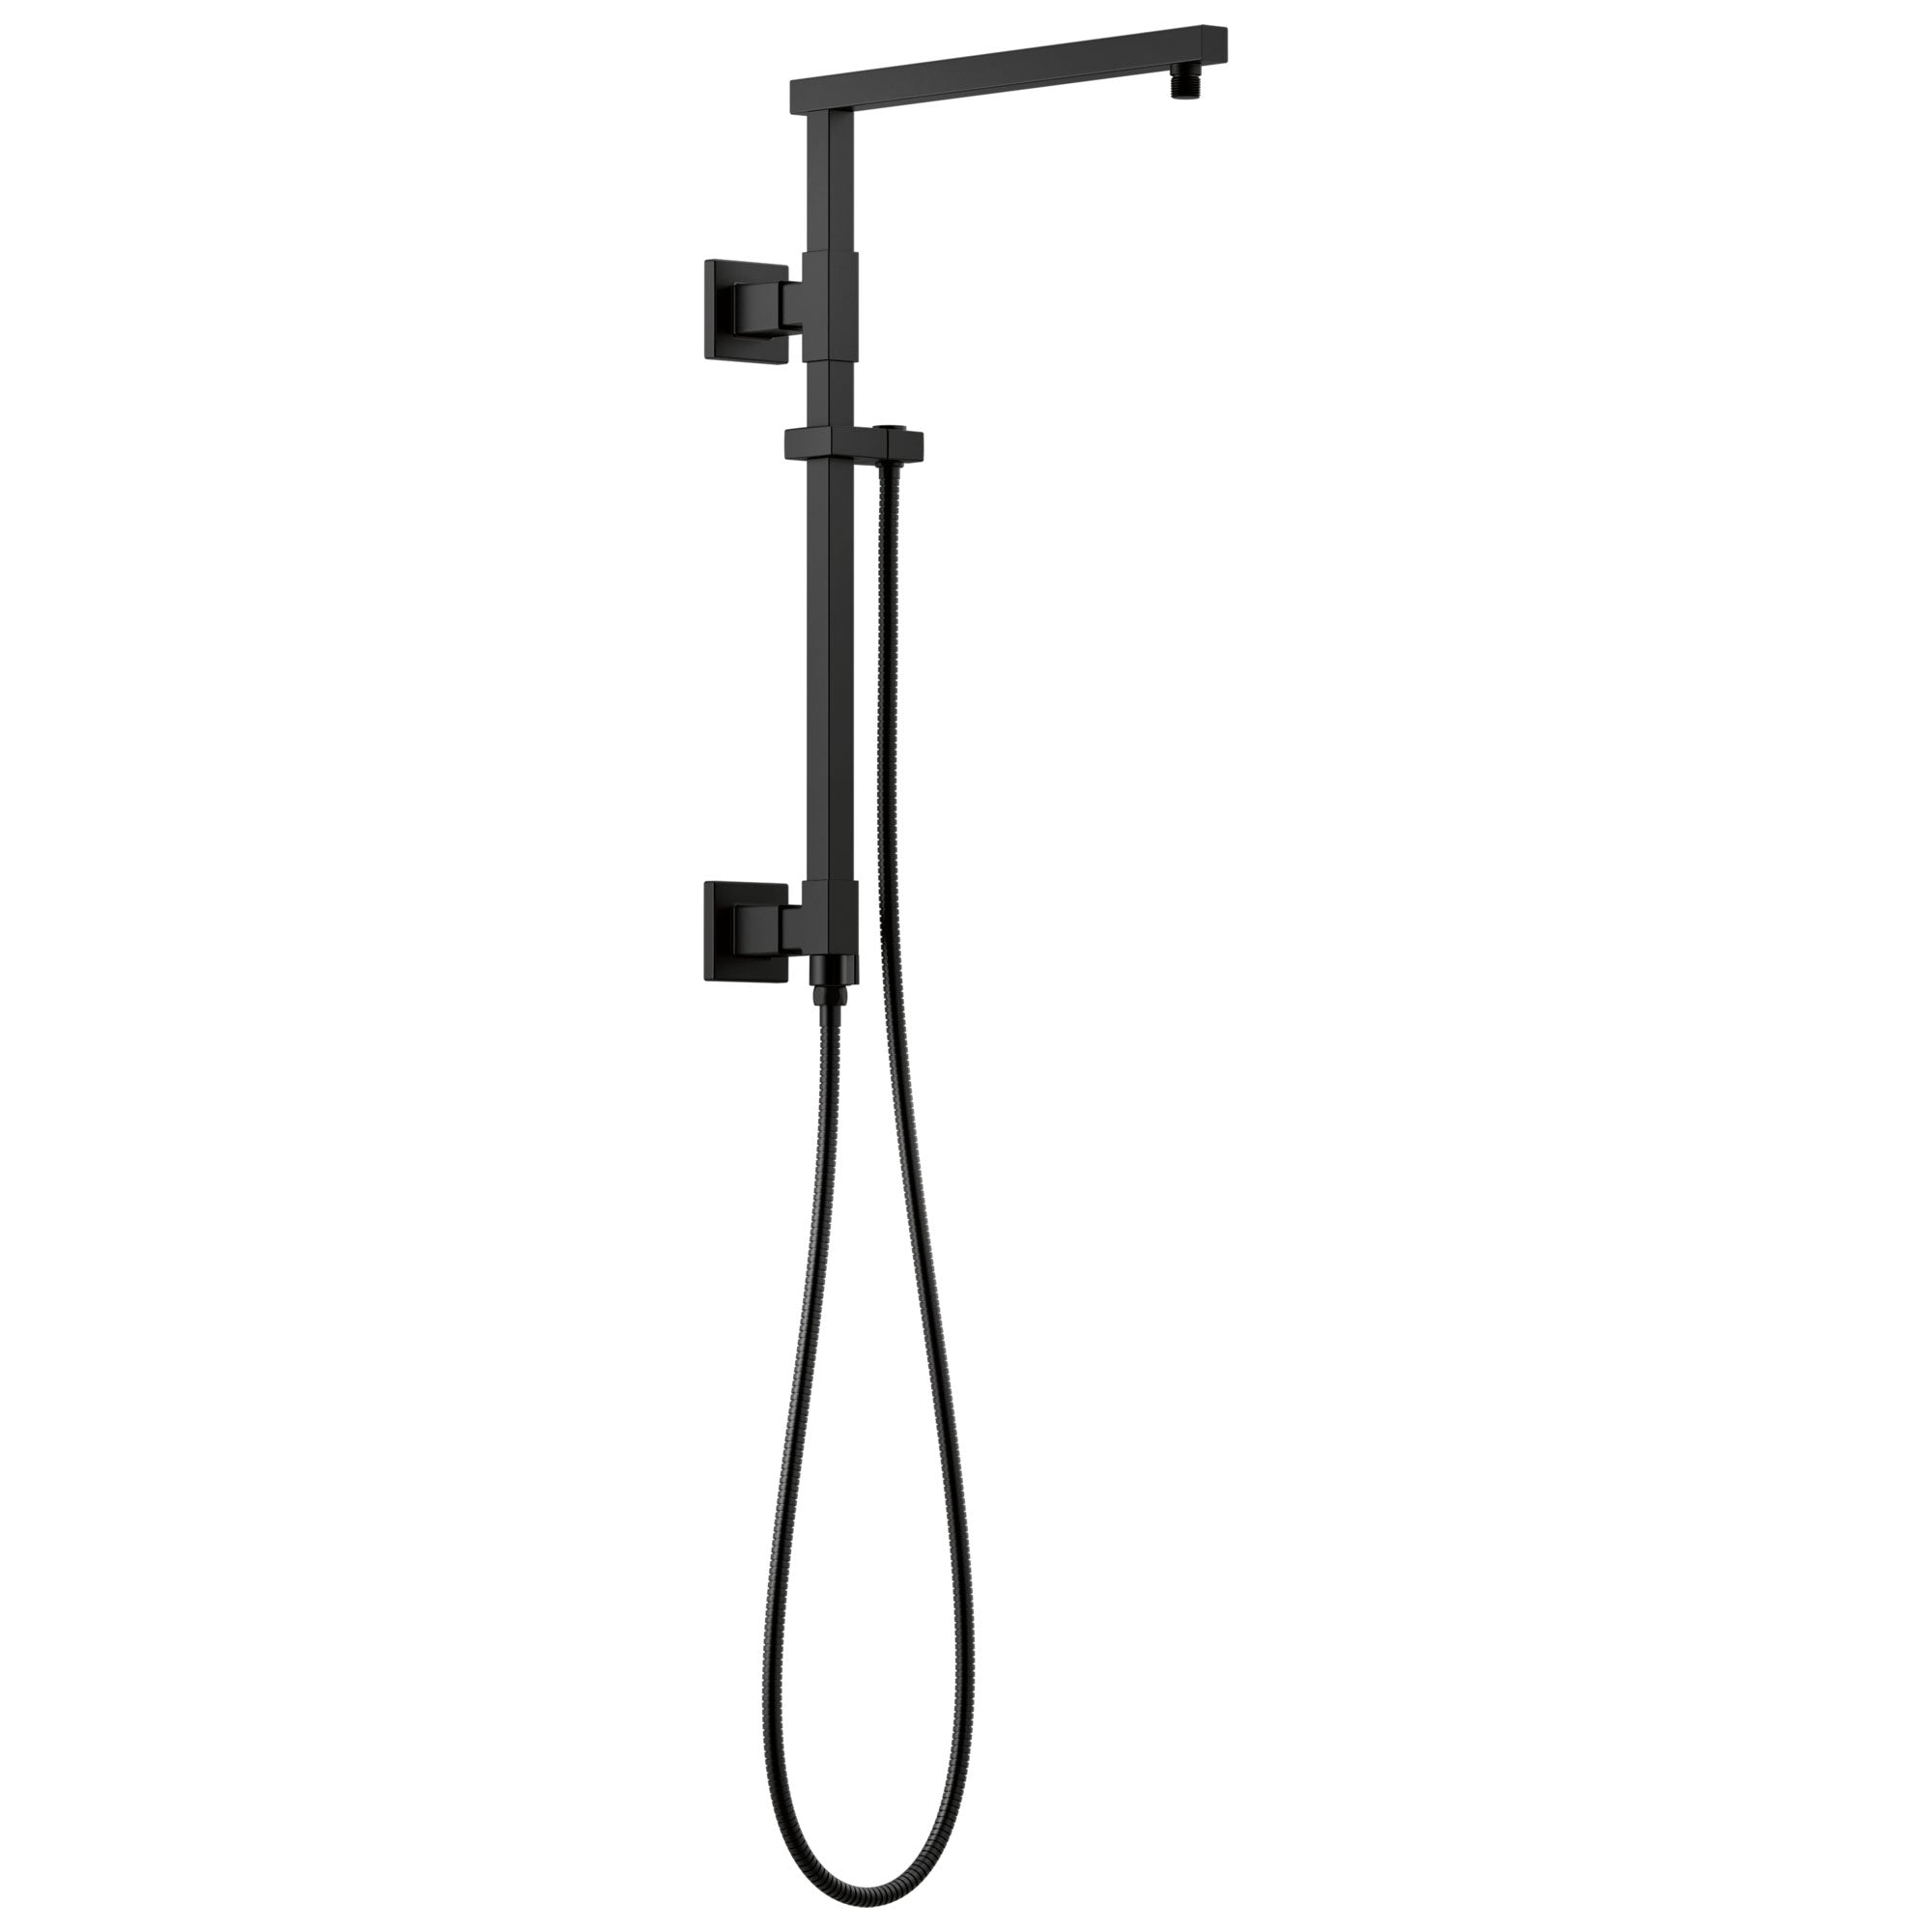 "Delta Matte Black Finish Emerge Modern Angular Square Shower Column 18"" (Requires Showerhead, Hand Spray, and Control) D58410BL"